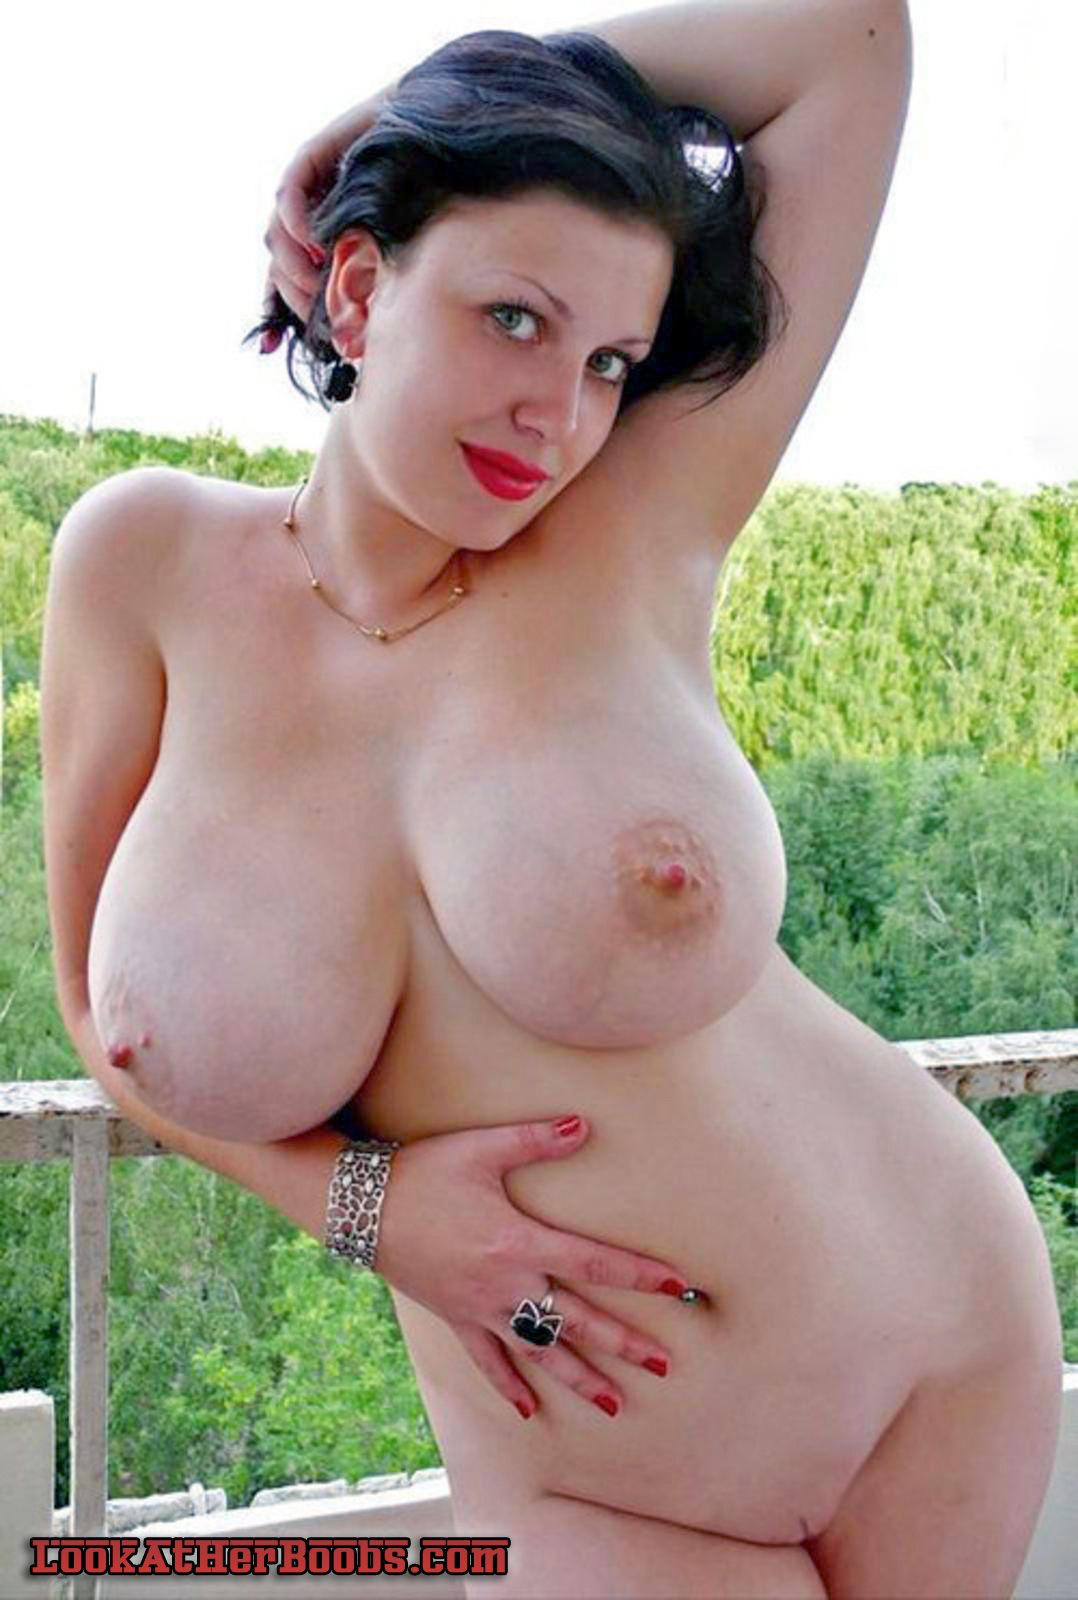 naked girls with gigantic breasts